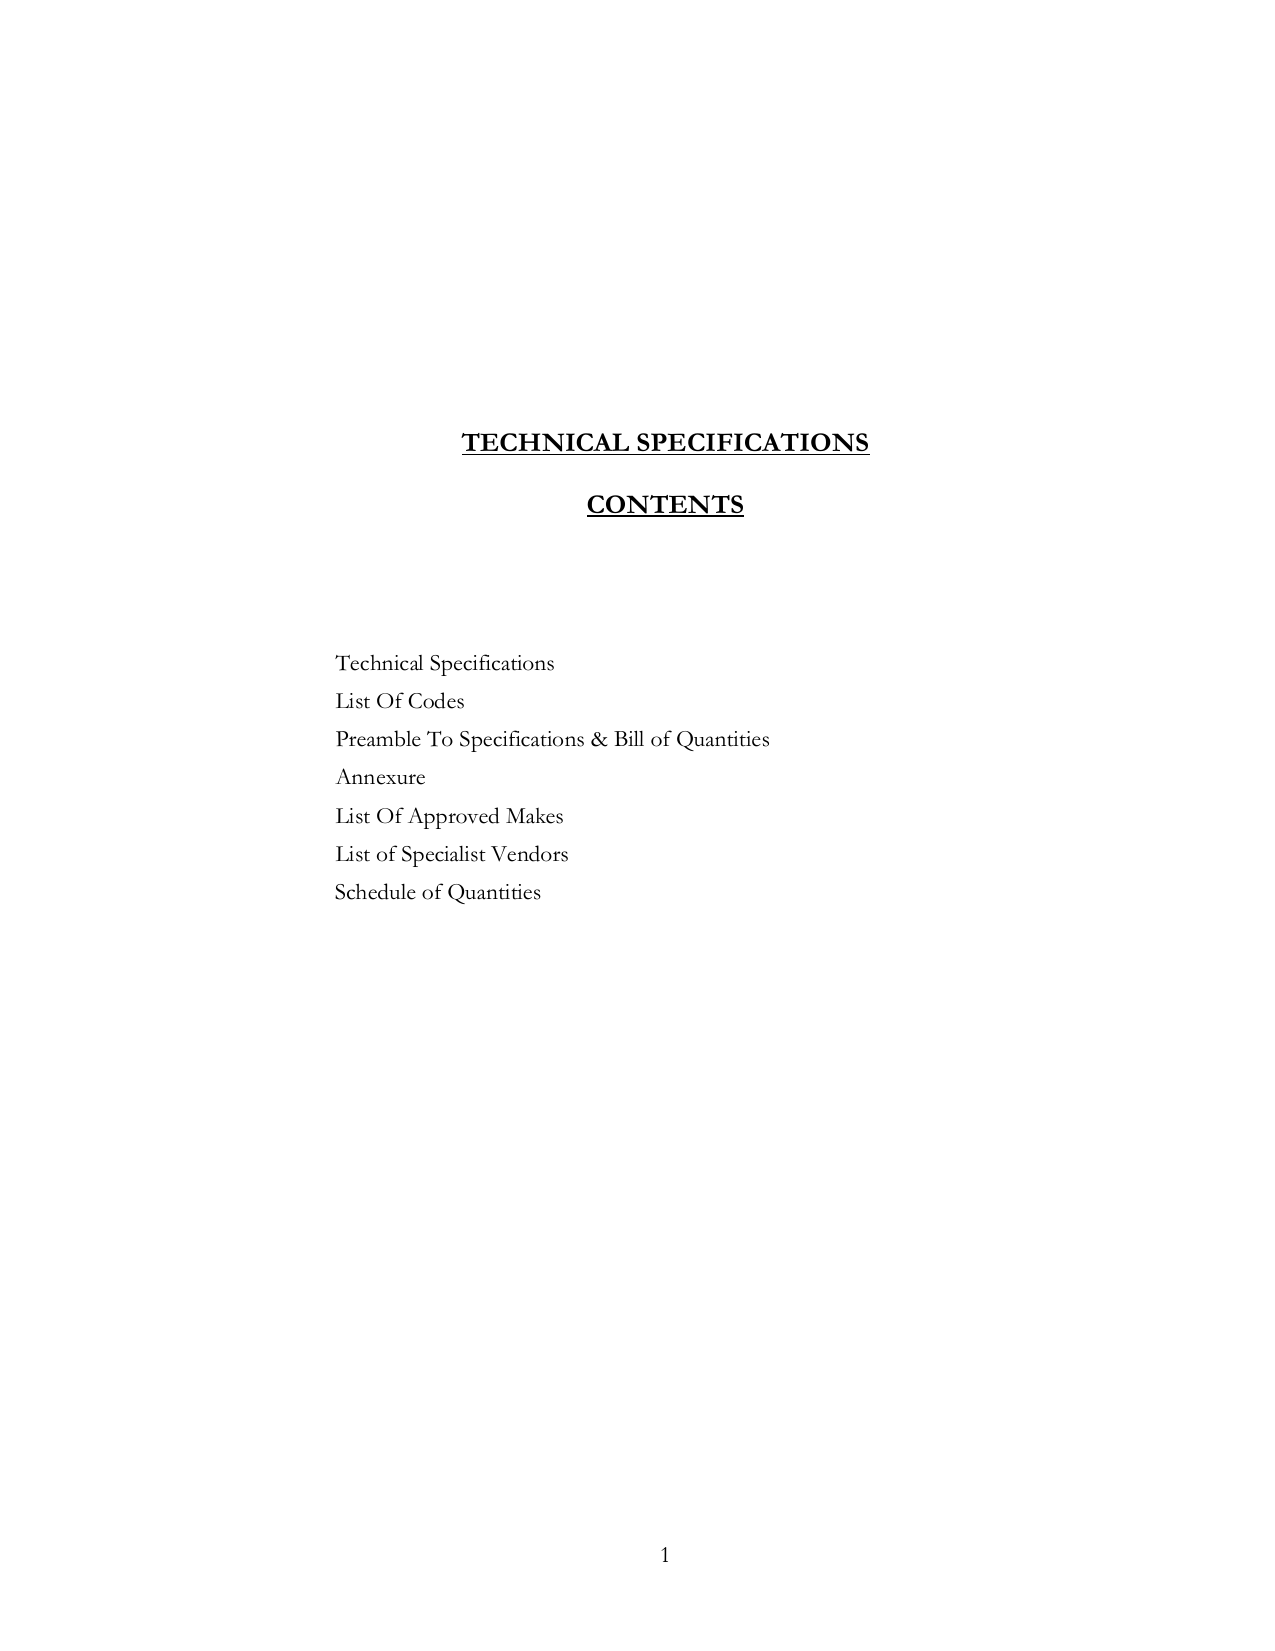 Technical Specifications Contents